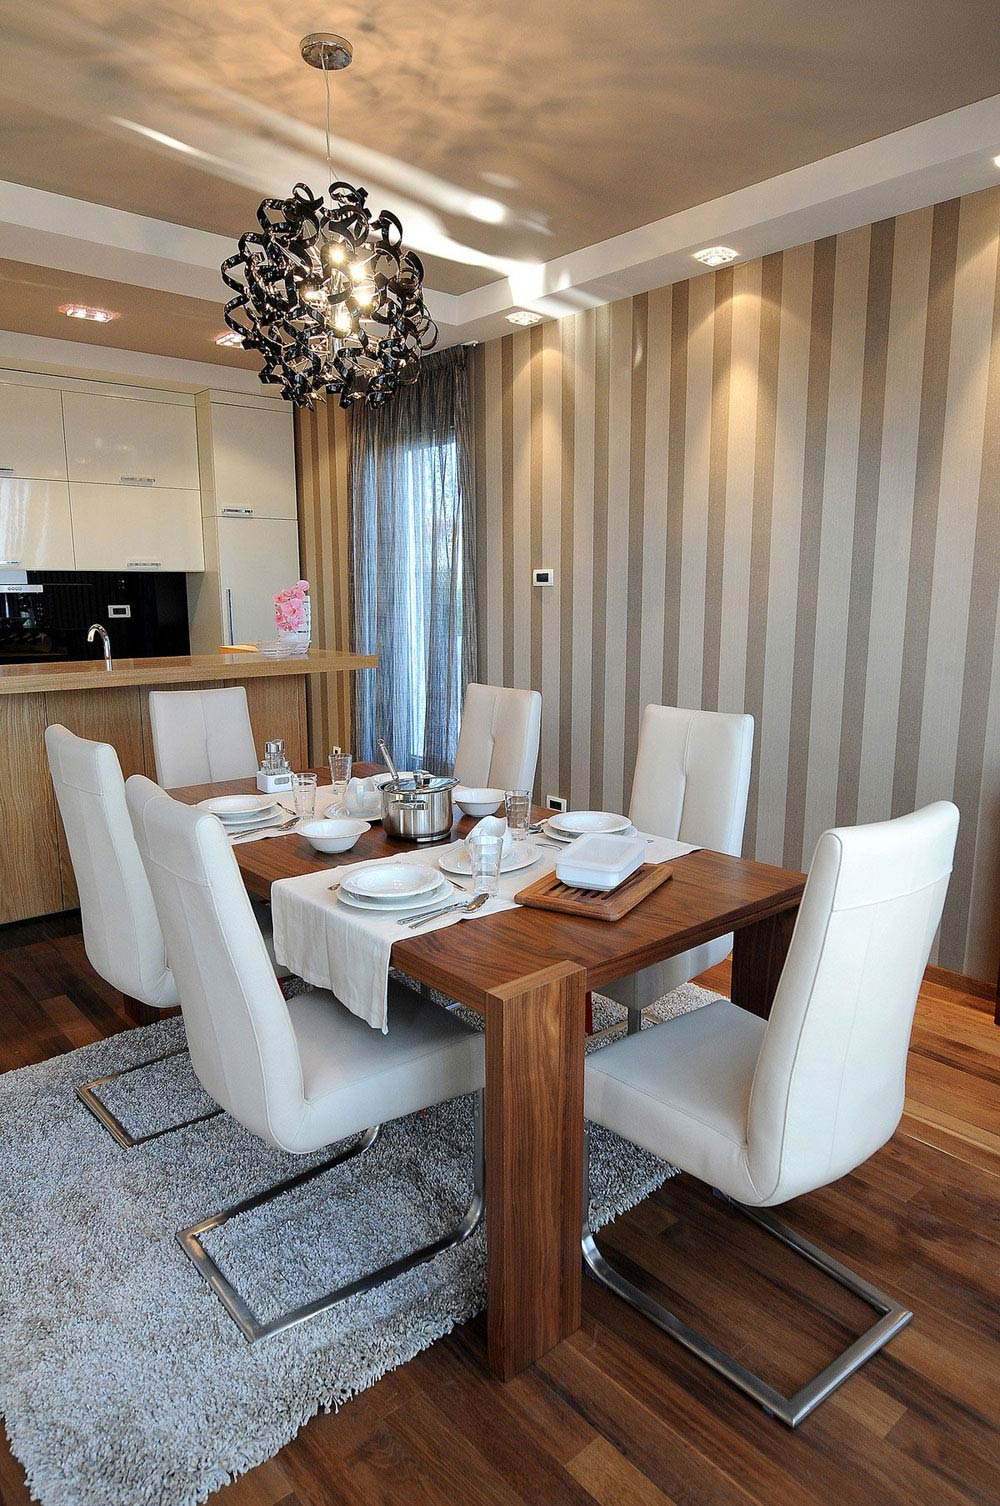 Dining Table, Lighting, Kitchen, Penthouse in Belgrade, Serbia